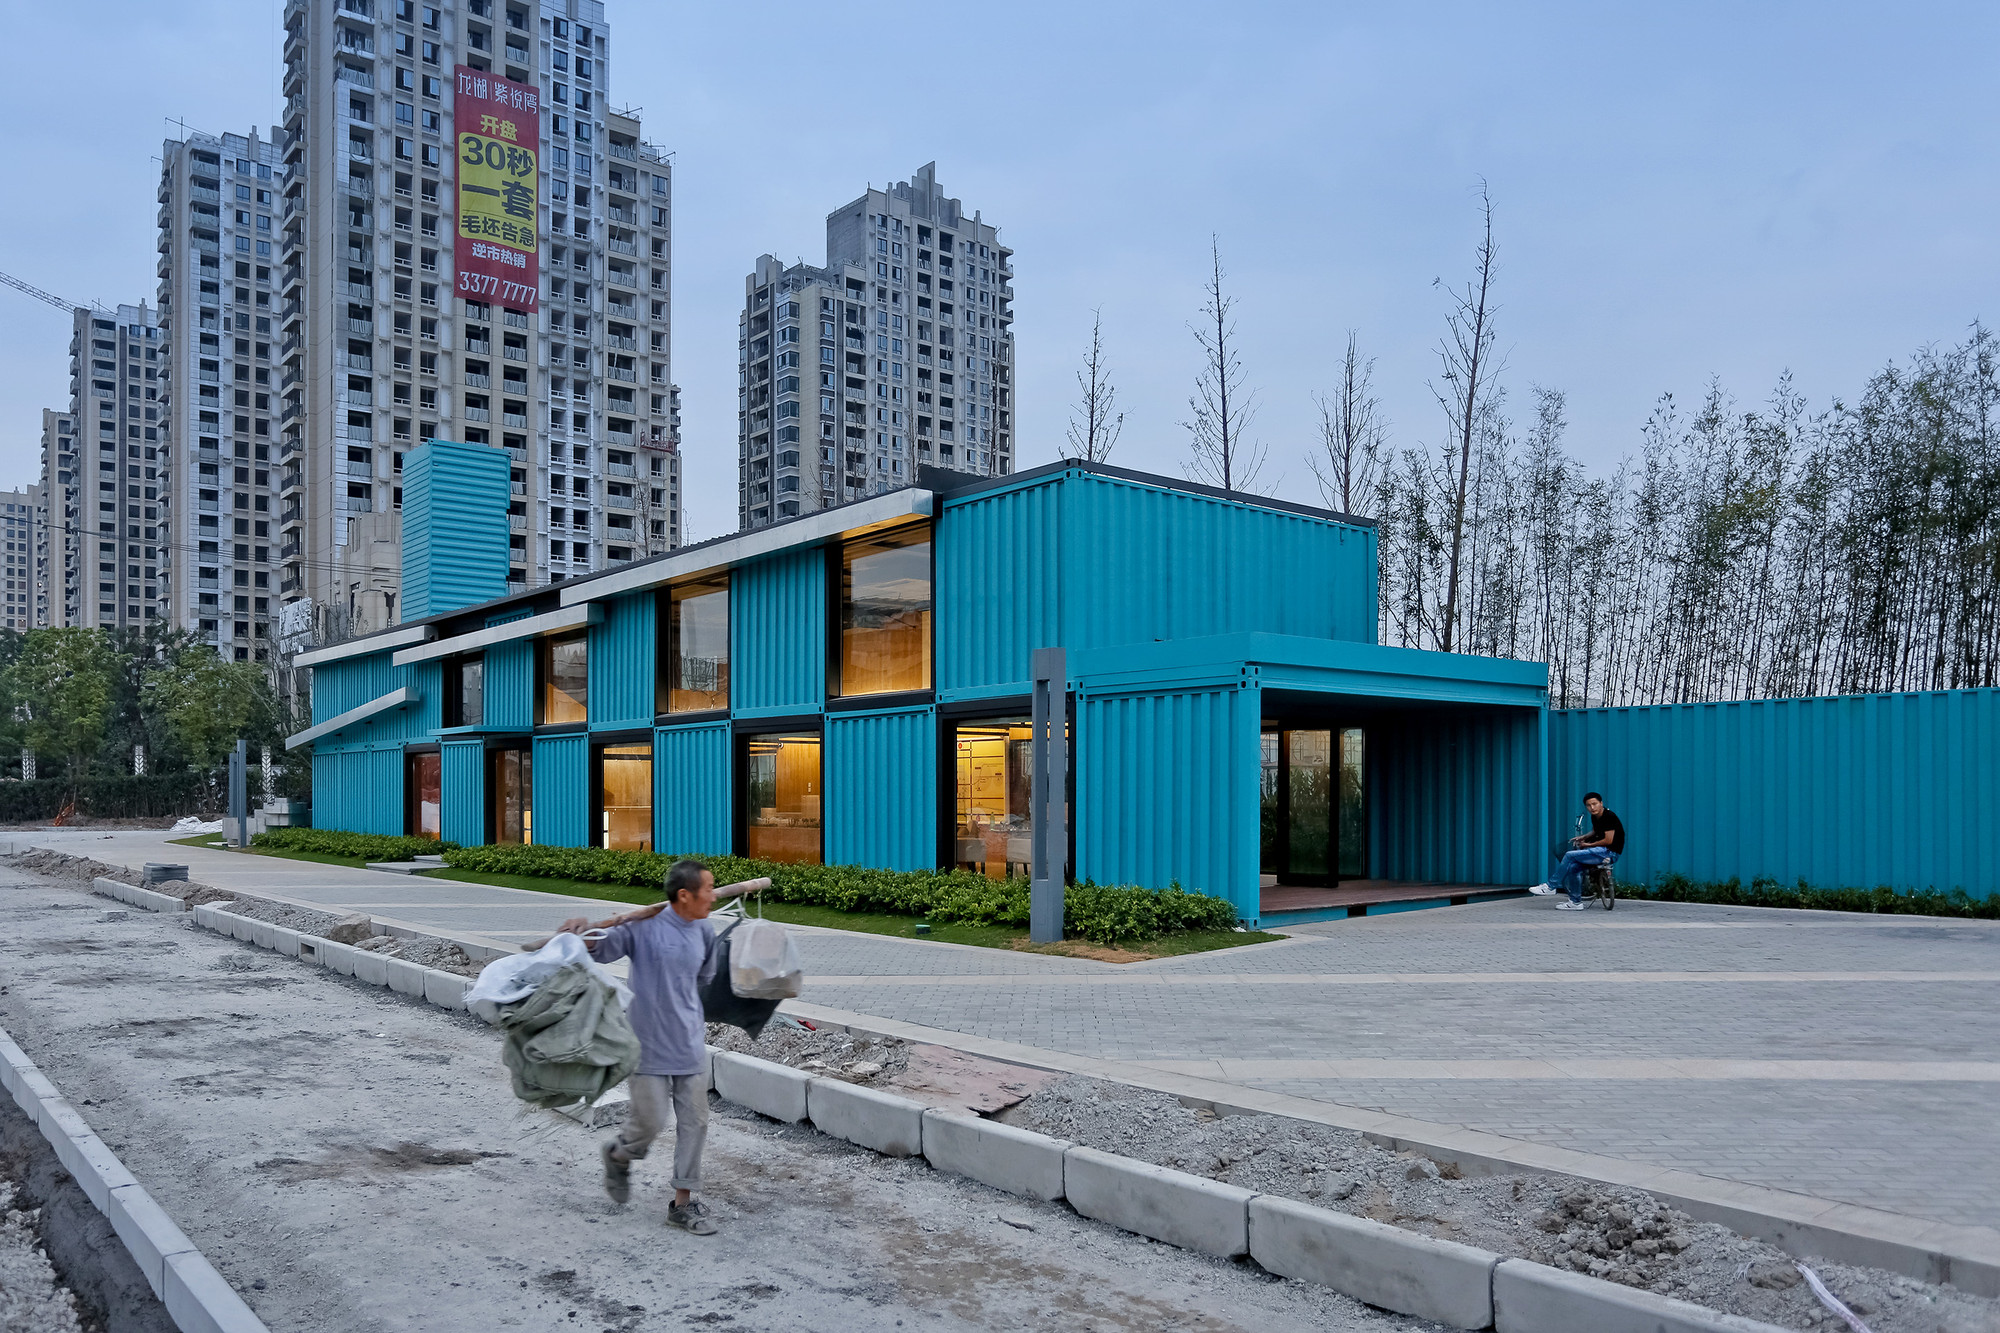 Container Sale Office / Atelier XÜK, © Su shengliang